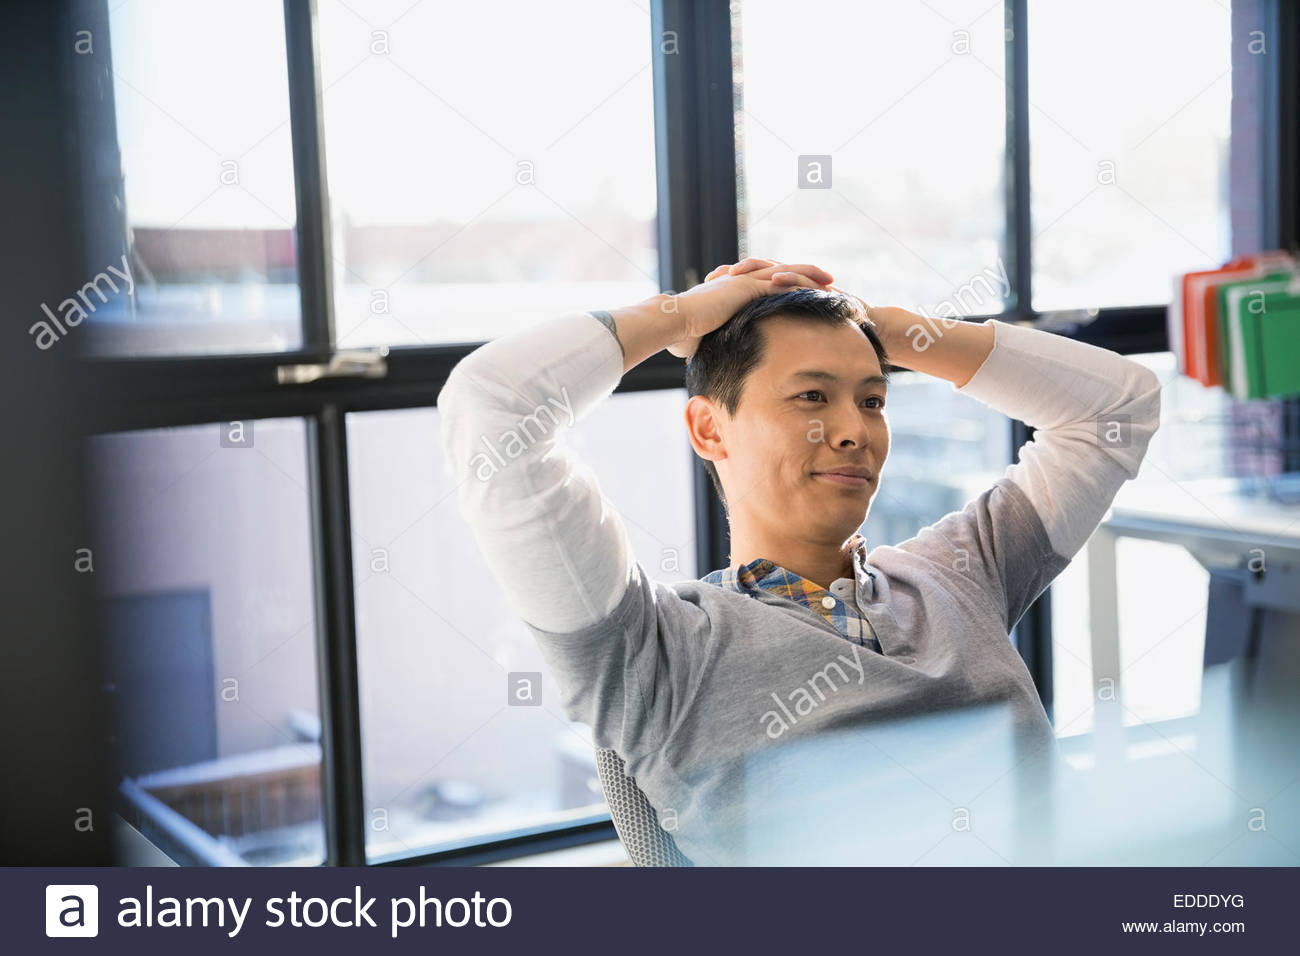 Casual businessman with hands behind head in office - Stock Image